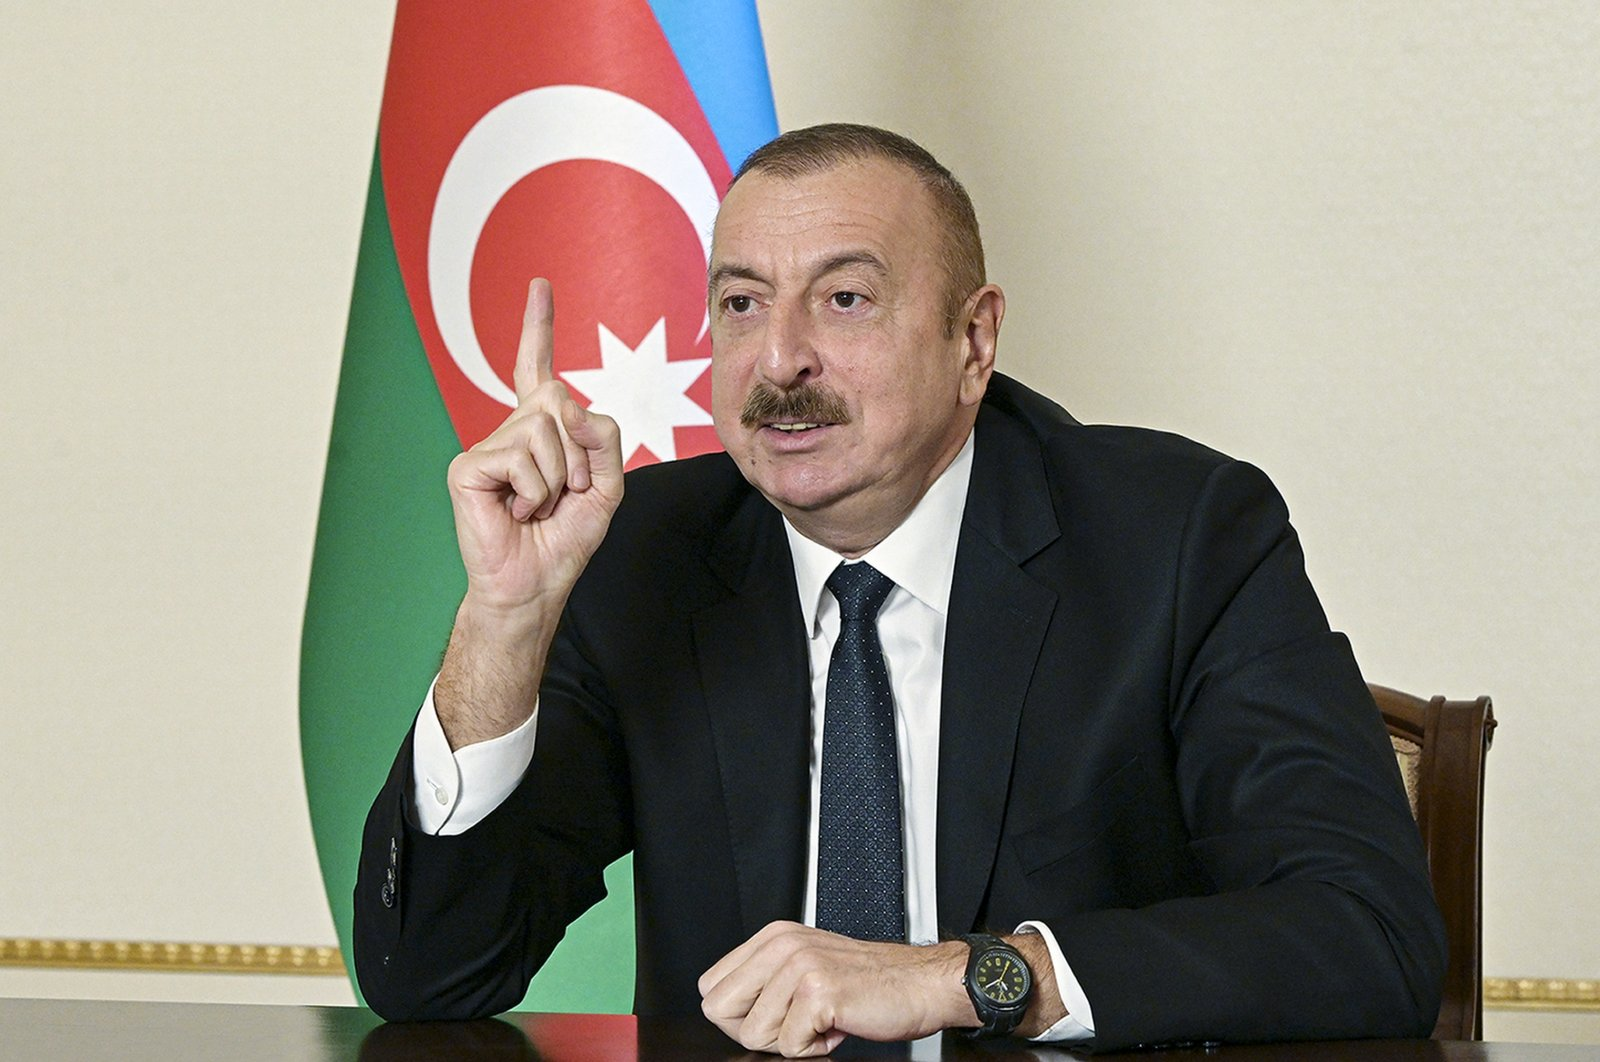 Azerbaijani President Ilham Aliyev gestures as he addresses the nation in Baku, Azerbaijan on Wednesday, Nov. 25, 2020. (Azerbaijani Presidential Press Office via AP)